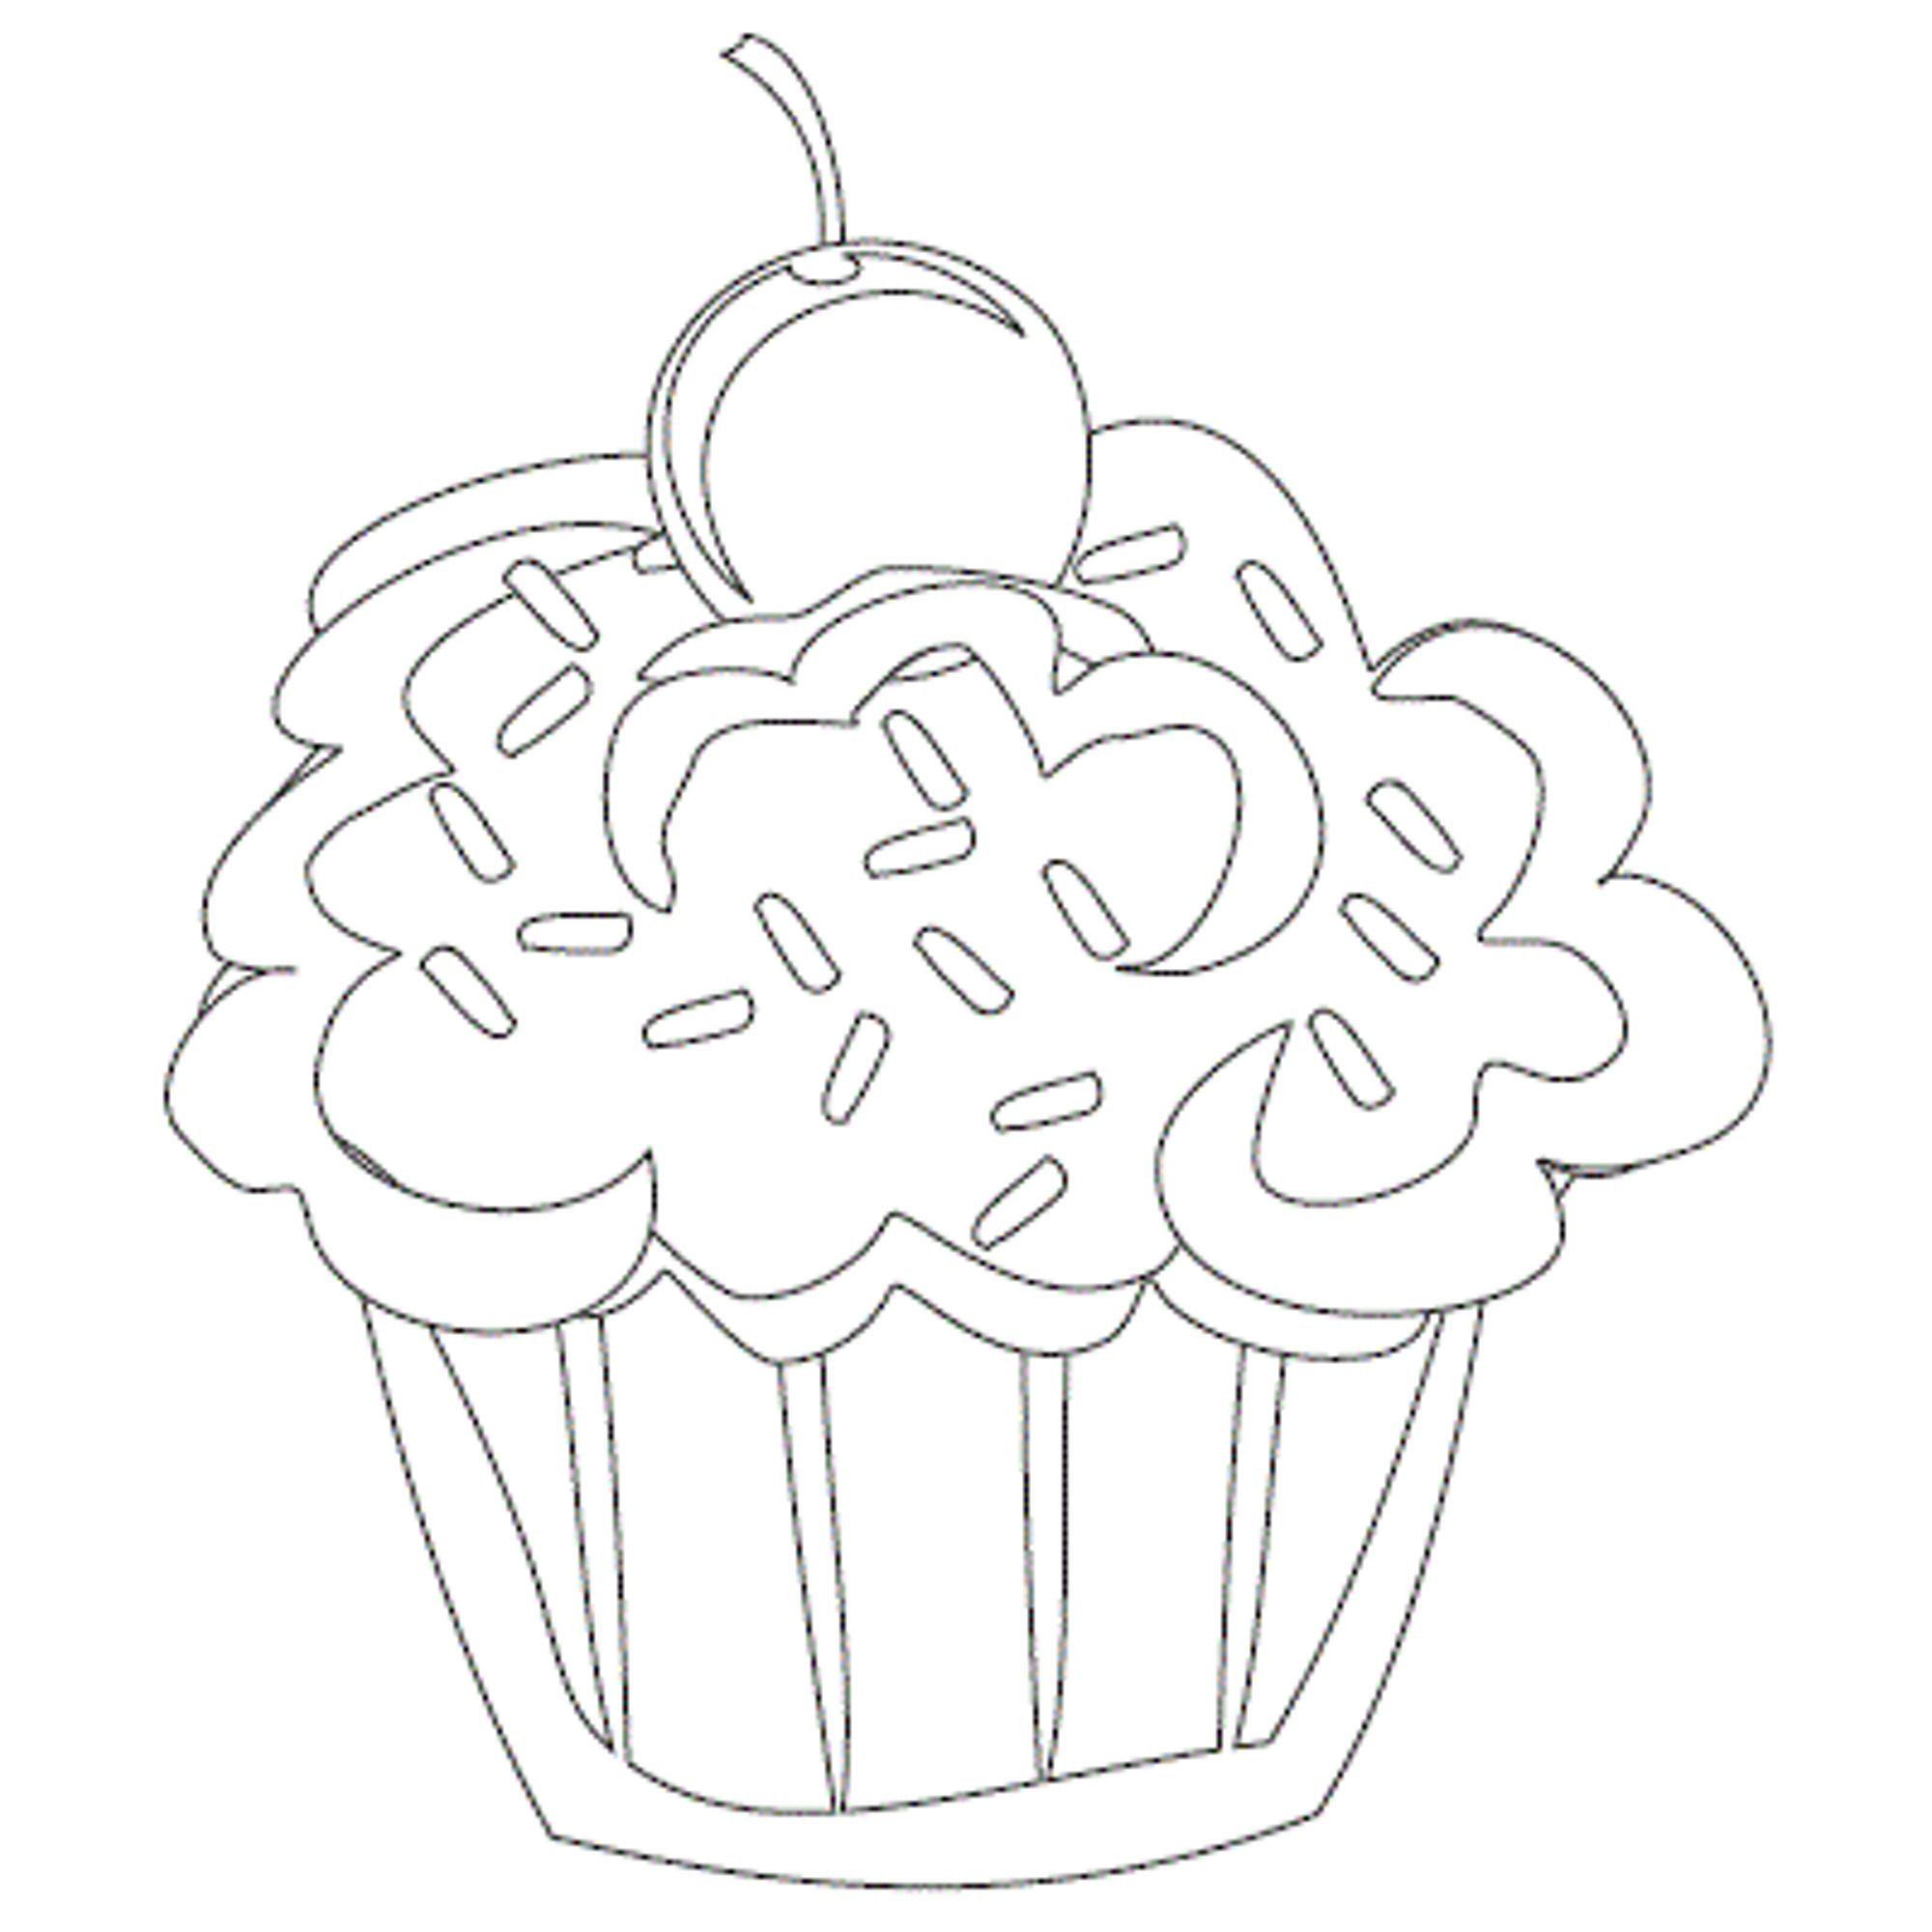 cute cupcakes coloring page : cupcake coloring pages | ice cream ...